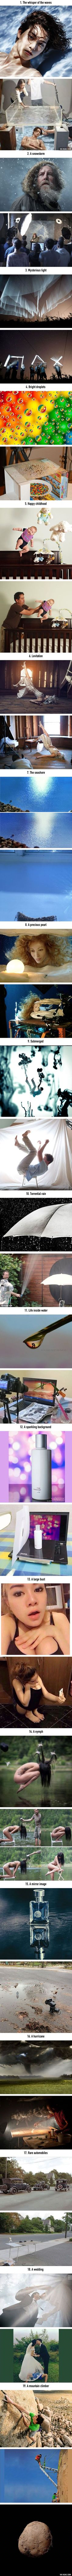 19 photos showing the incredible tricks people use to get the perfect shot